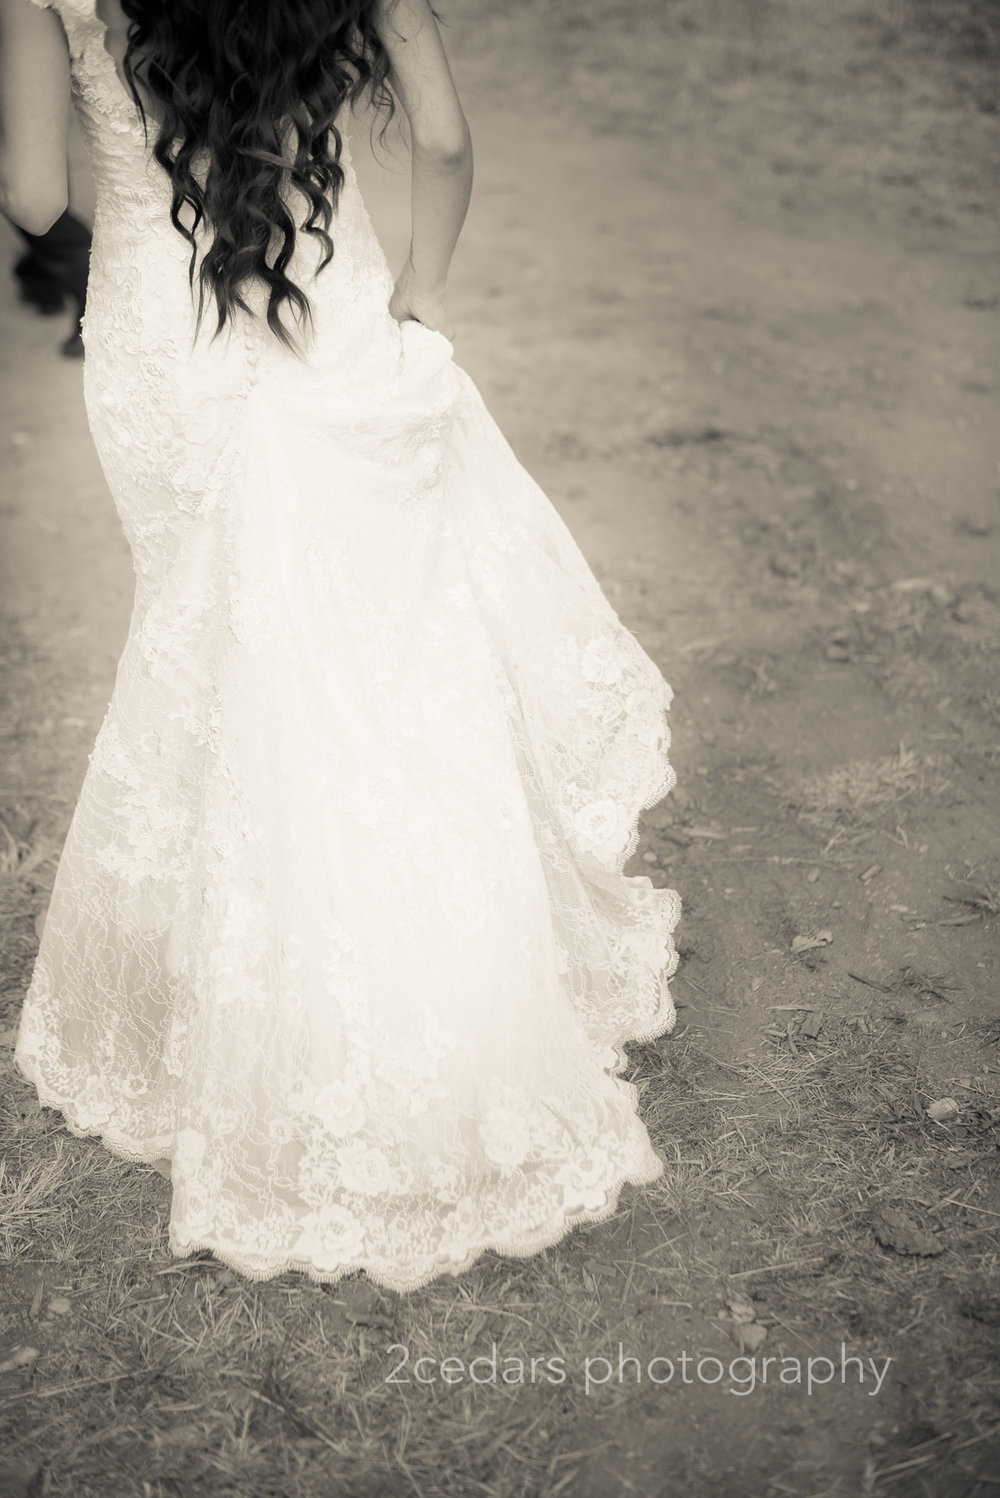 bride wedding gown train walking across the dirt road